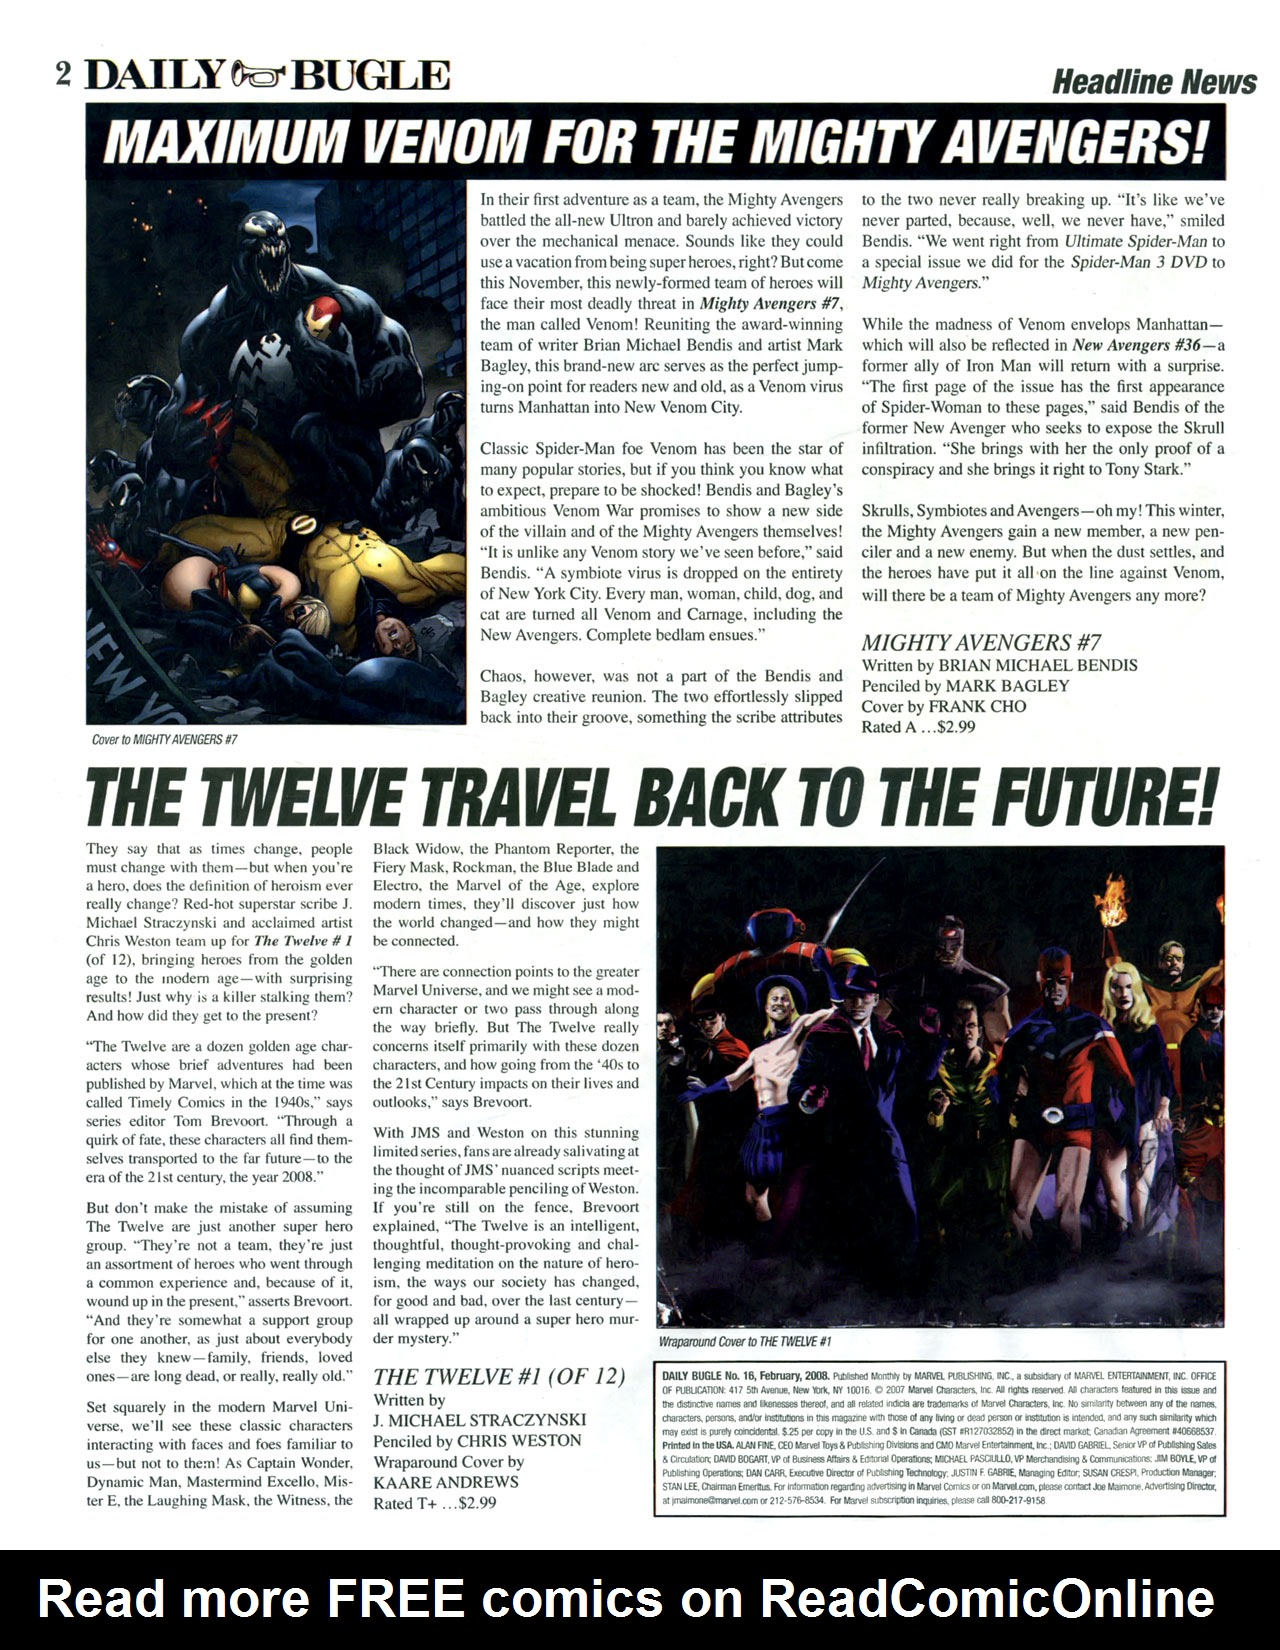 Read online Daily Bugle (2006) comic -  Issue #16 - 3